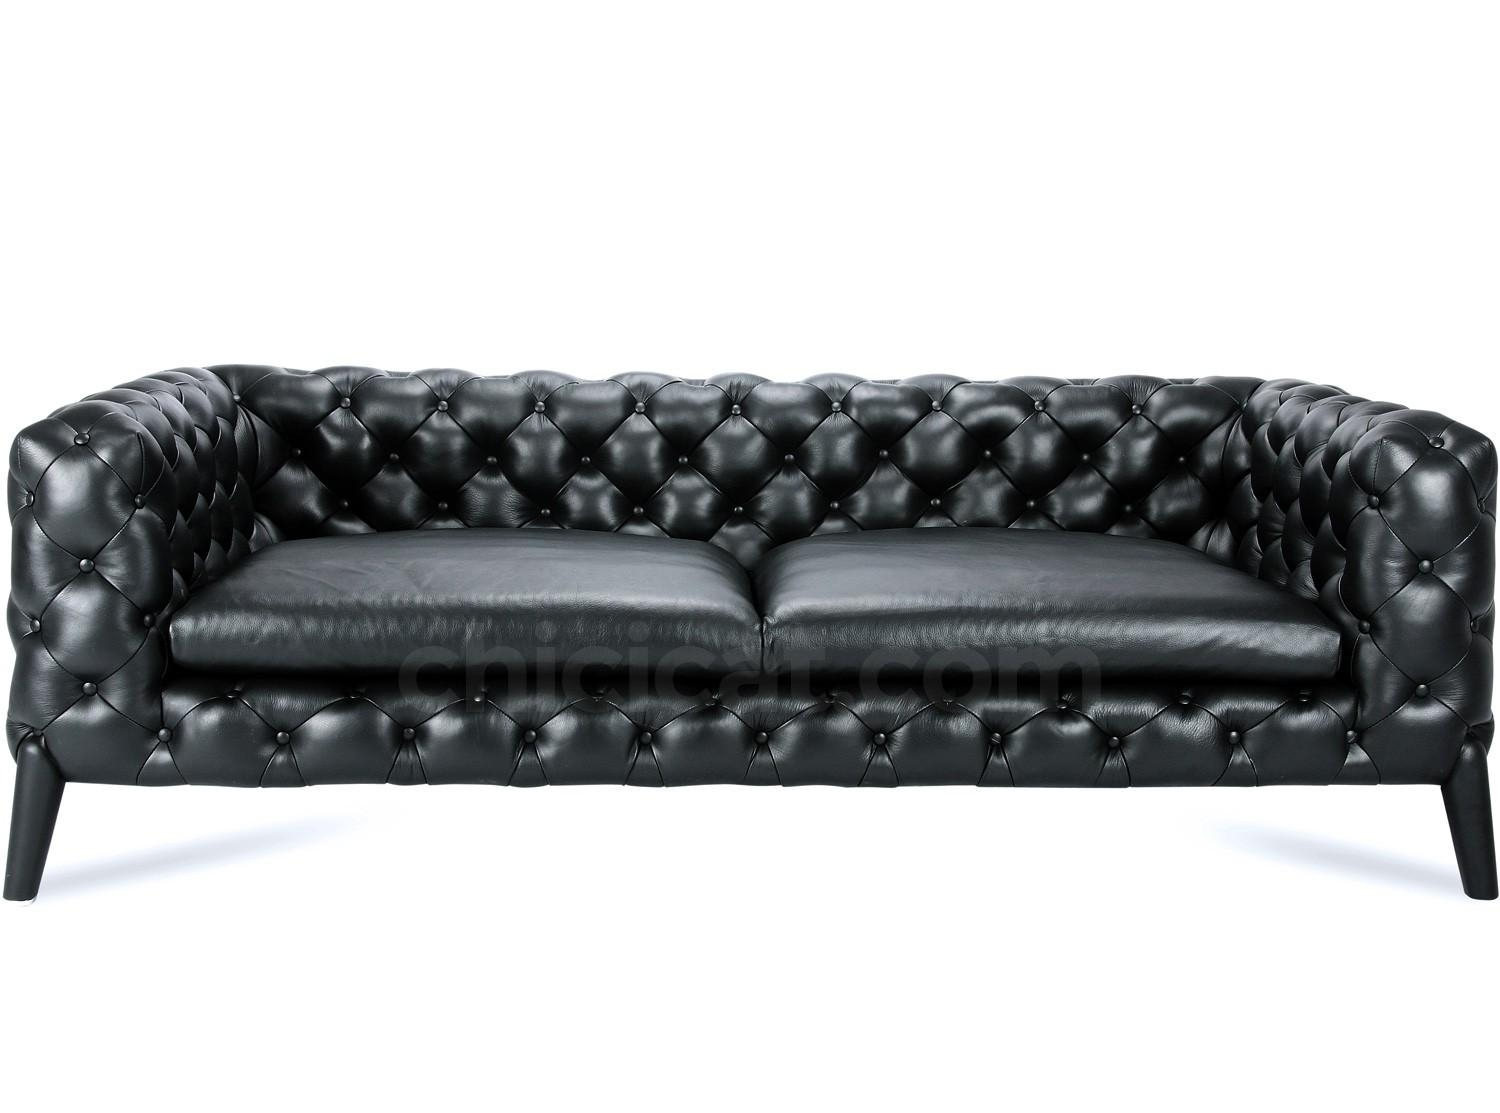 Windsor Chesterfield Sofa Replica With Regard To Windsor Sofas (Image 11 of 20)